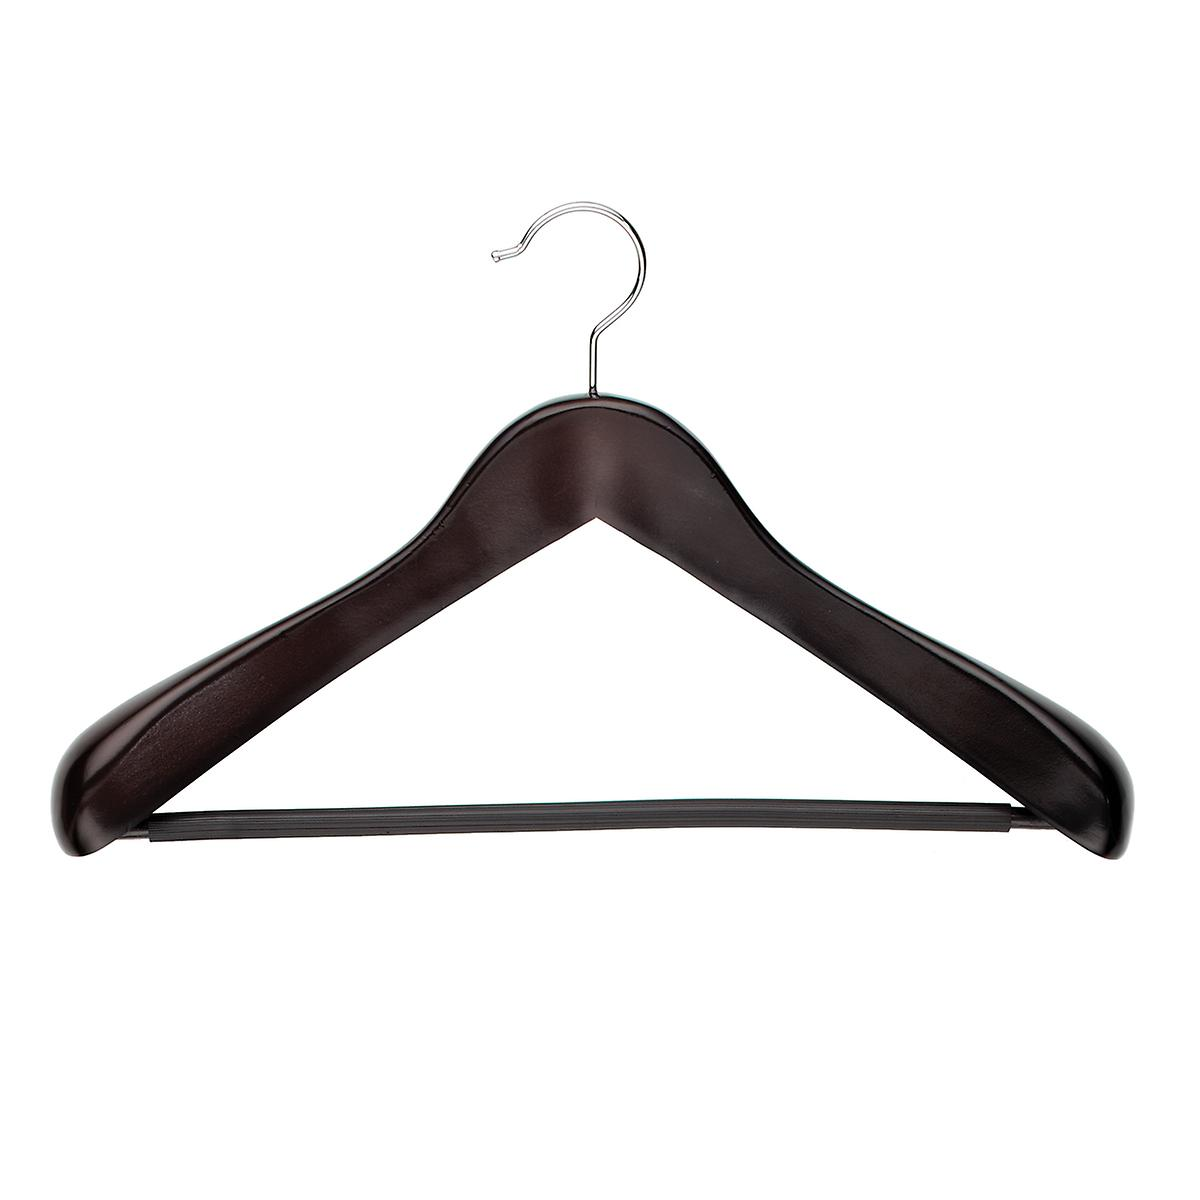 Oversized Walnut Wooden Coat & Suit Hanger